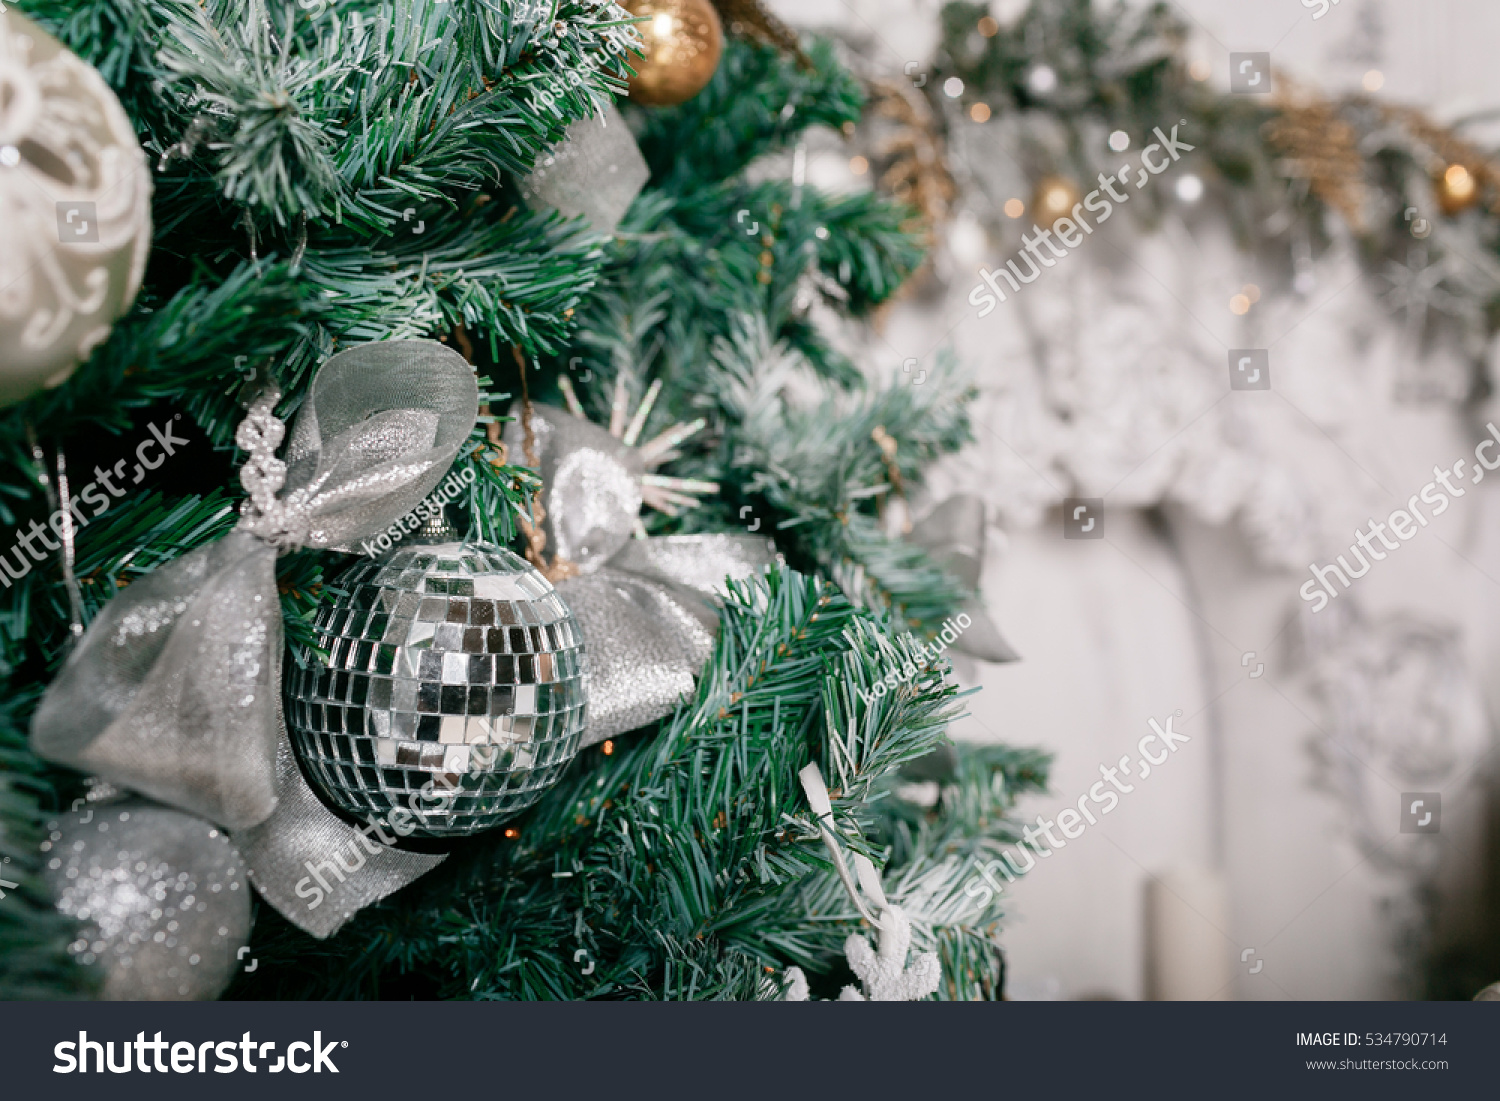 Decorative disco ball close up. decorated christmas tree on blurred